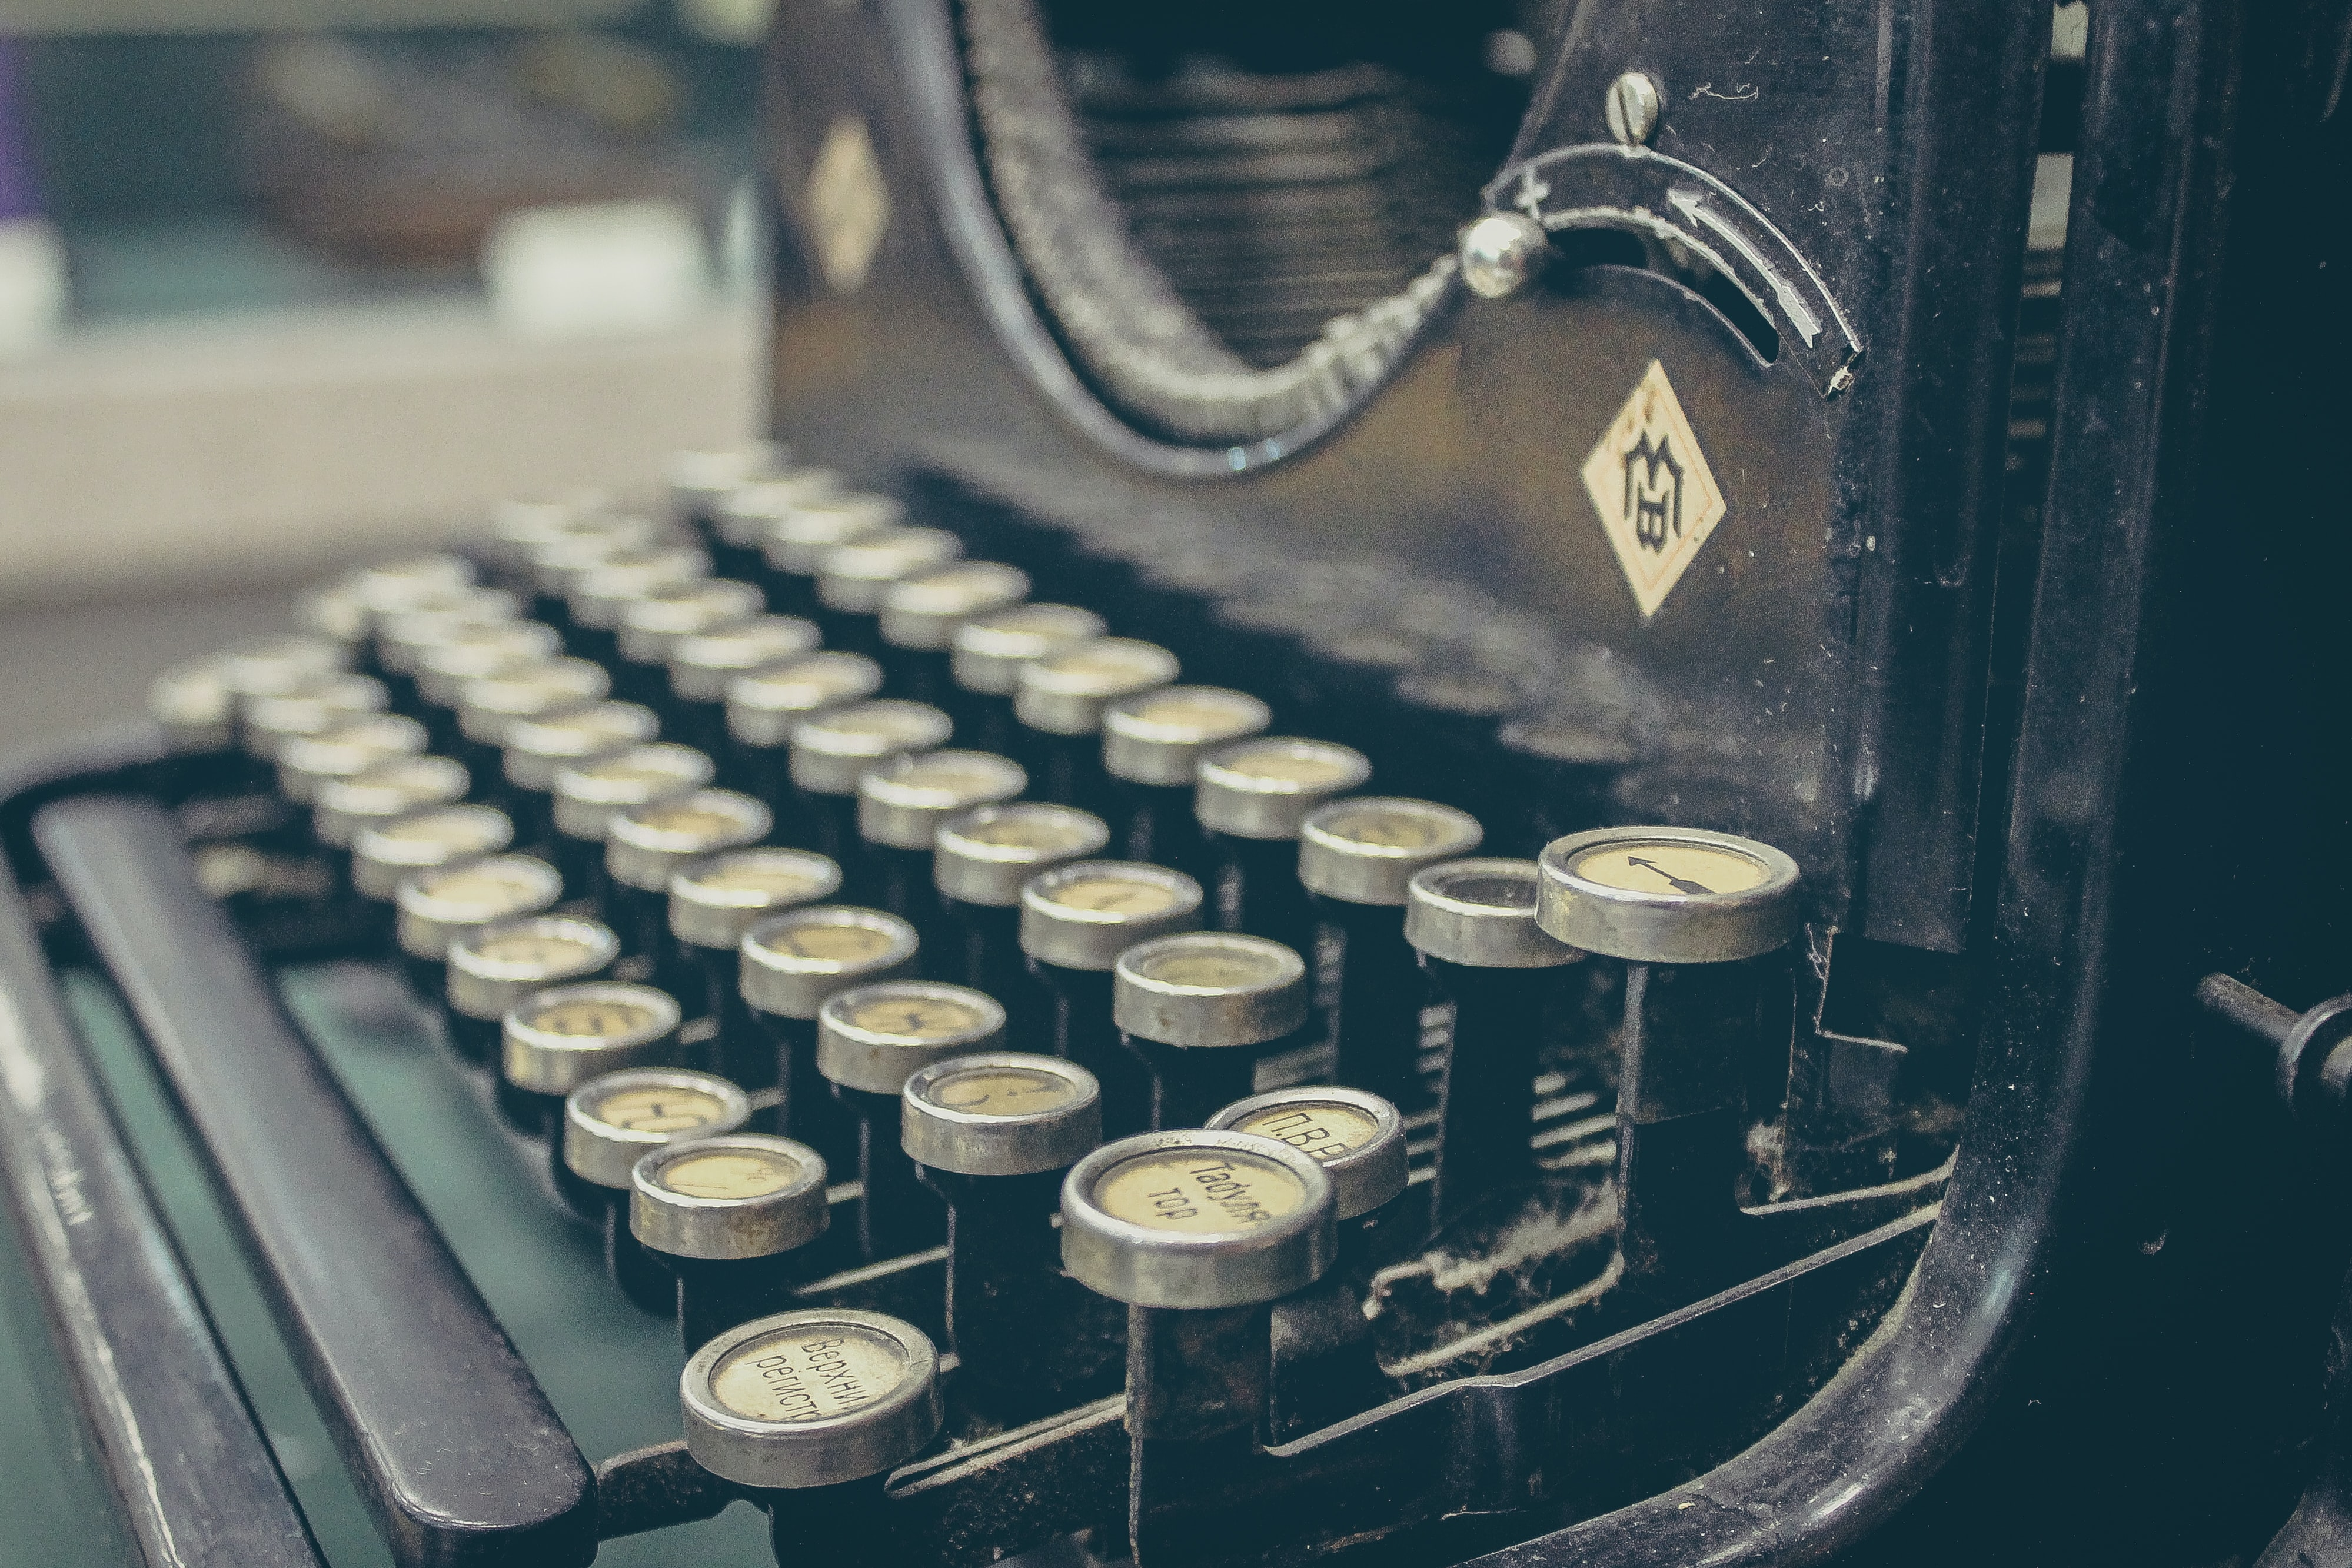 Close-up of the keyboard of a an old typewriter